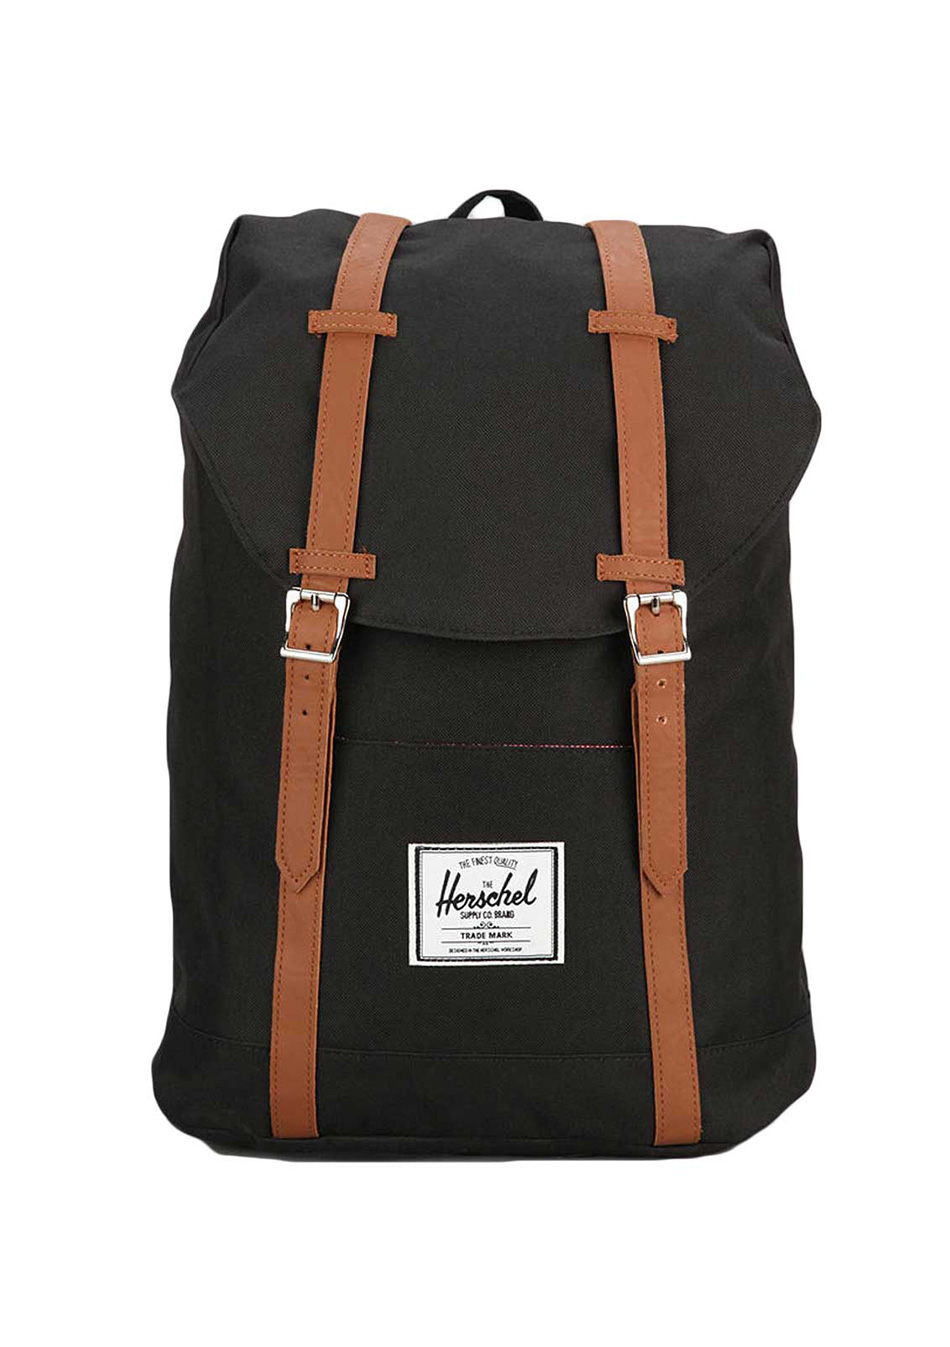 dadHERSCHEL-SUPPLY-CO-Retreat-Backpack-men-s-accessories-backpacks-01